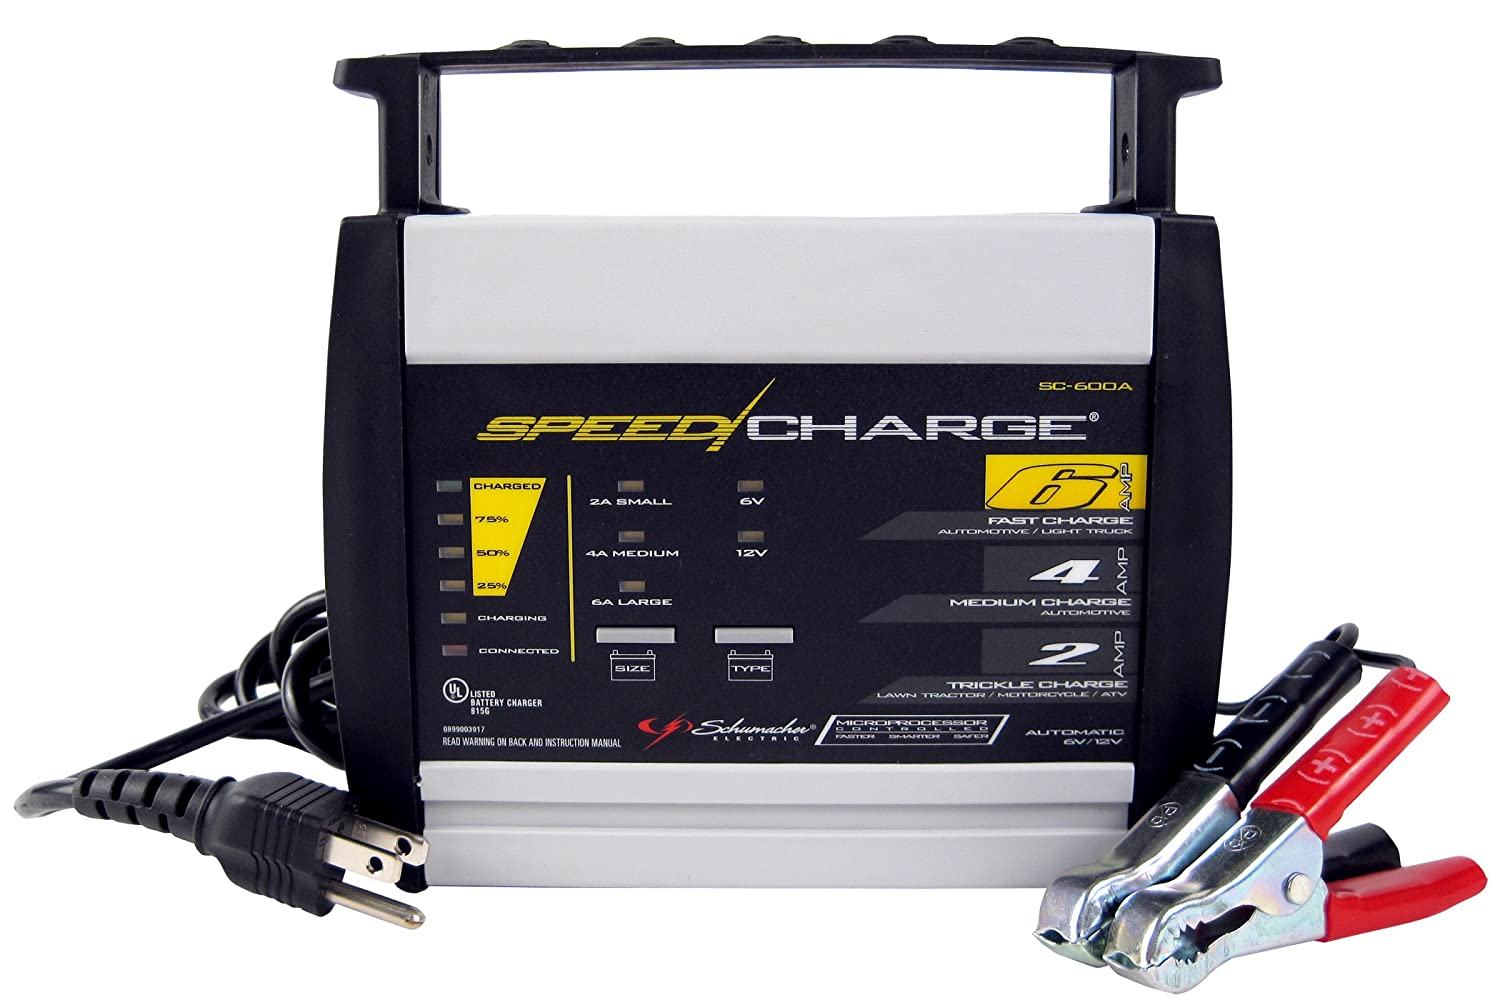 Schumacher SC-600A SpeedCharge High Frequency Battery Charger $34.28